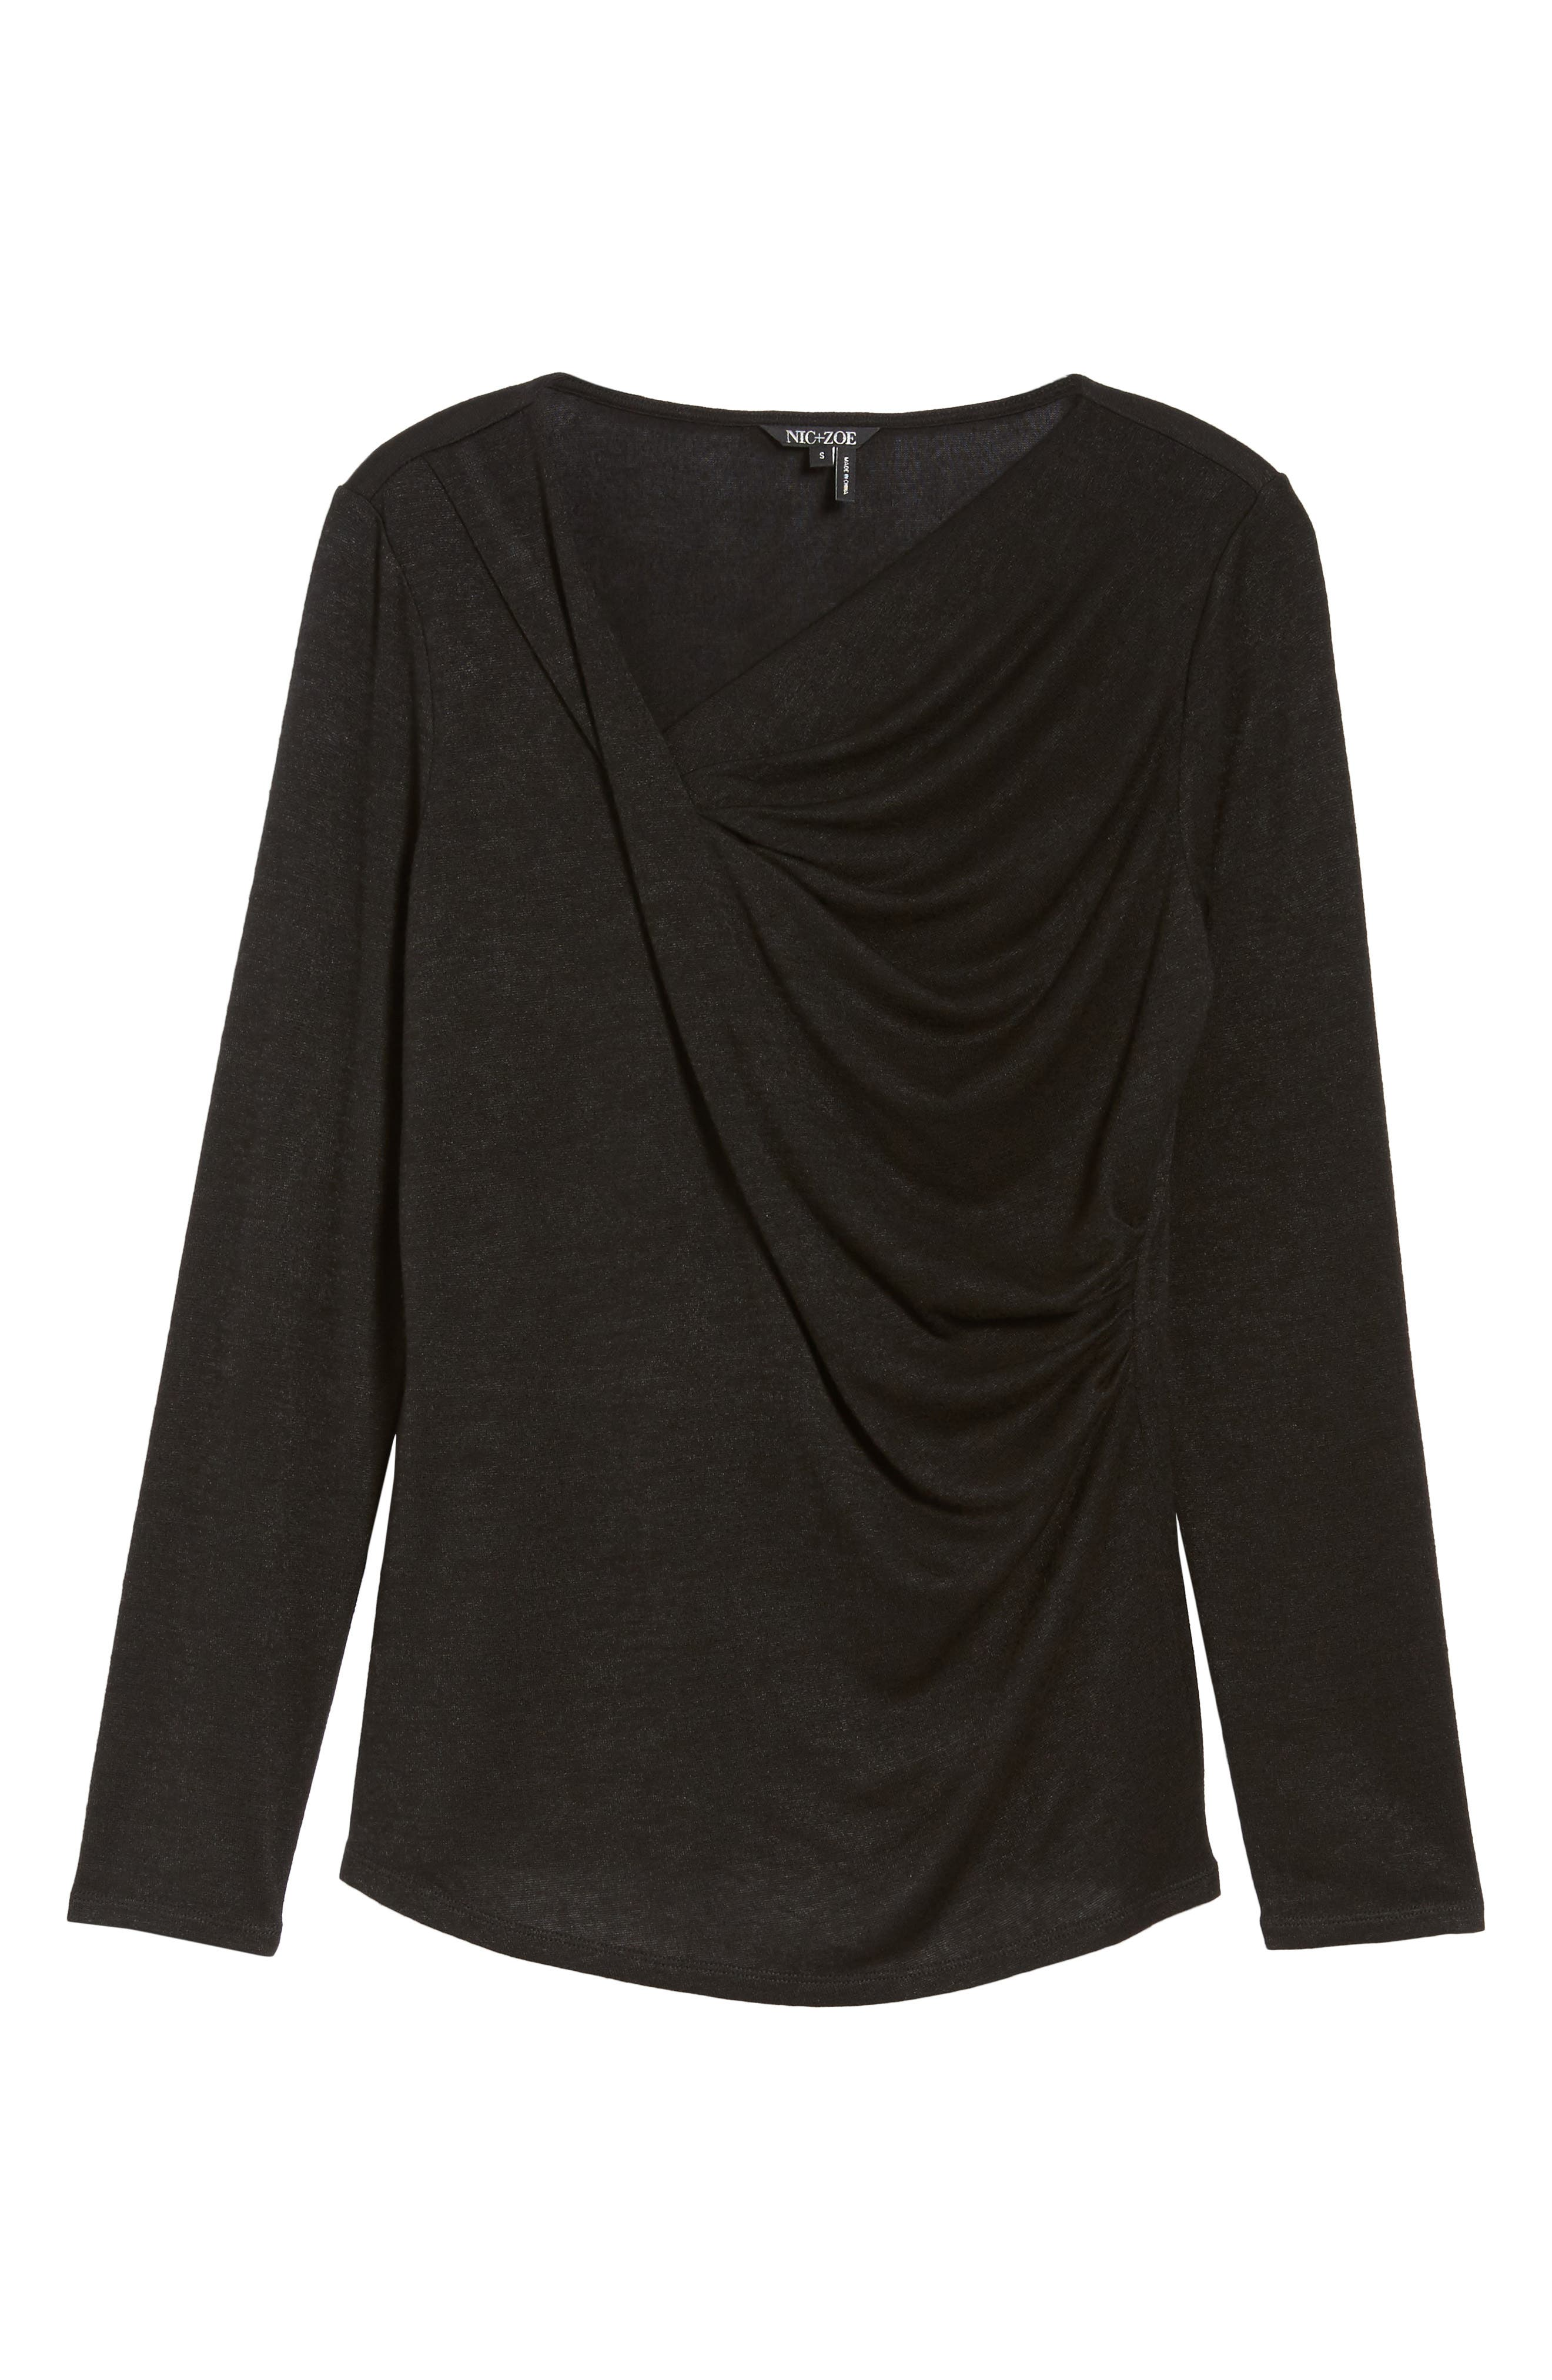 Every Occasion Drape Top,                             Alternate thumbnail 6, color,                             004